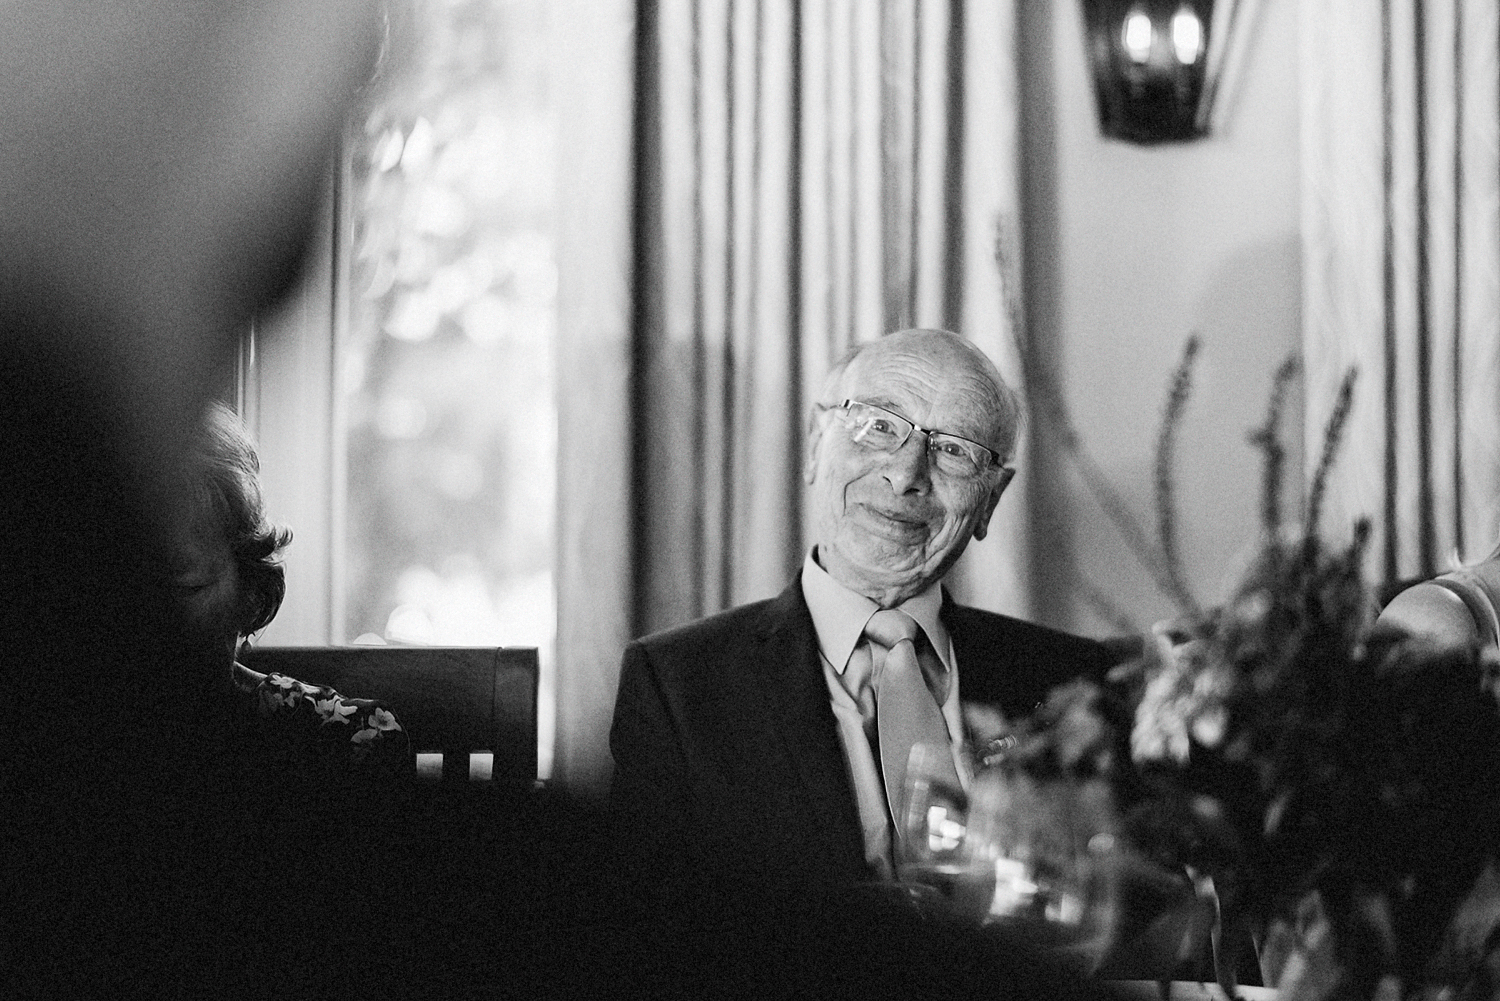 Muskoka-Cottage-Wedding-Photography-Photographer_Photojournalistic-Documentary-Wedding-Photography_Vintage-Toronto-Wedding-Photographers-Candid-Grandpa-BW.jpg